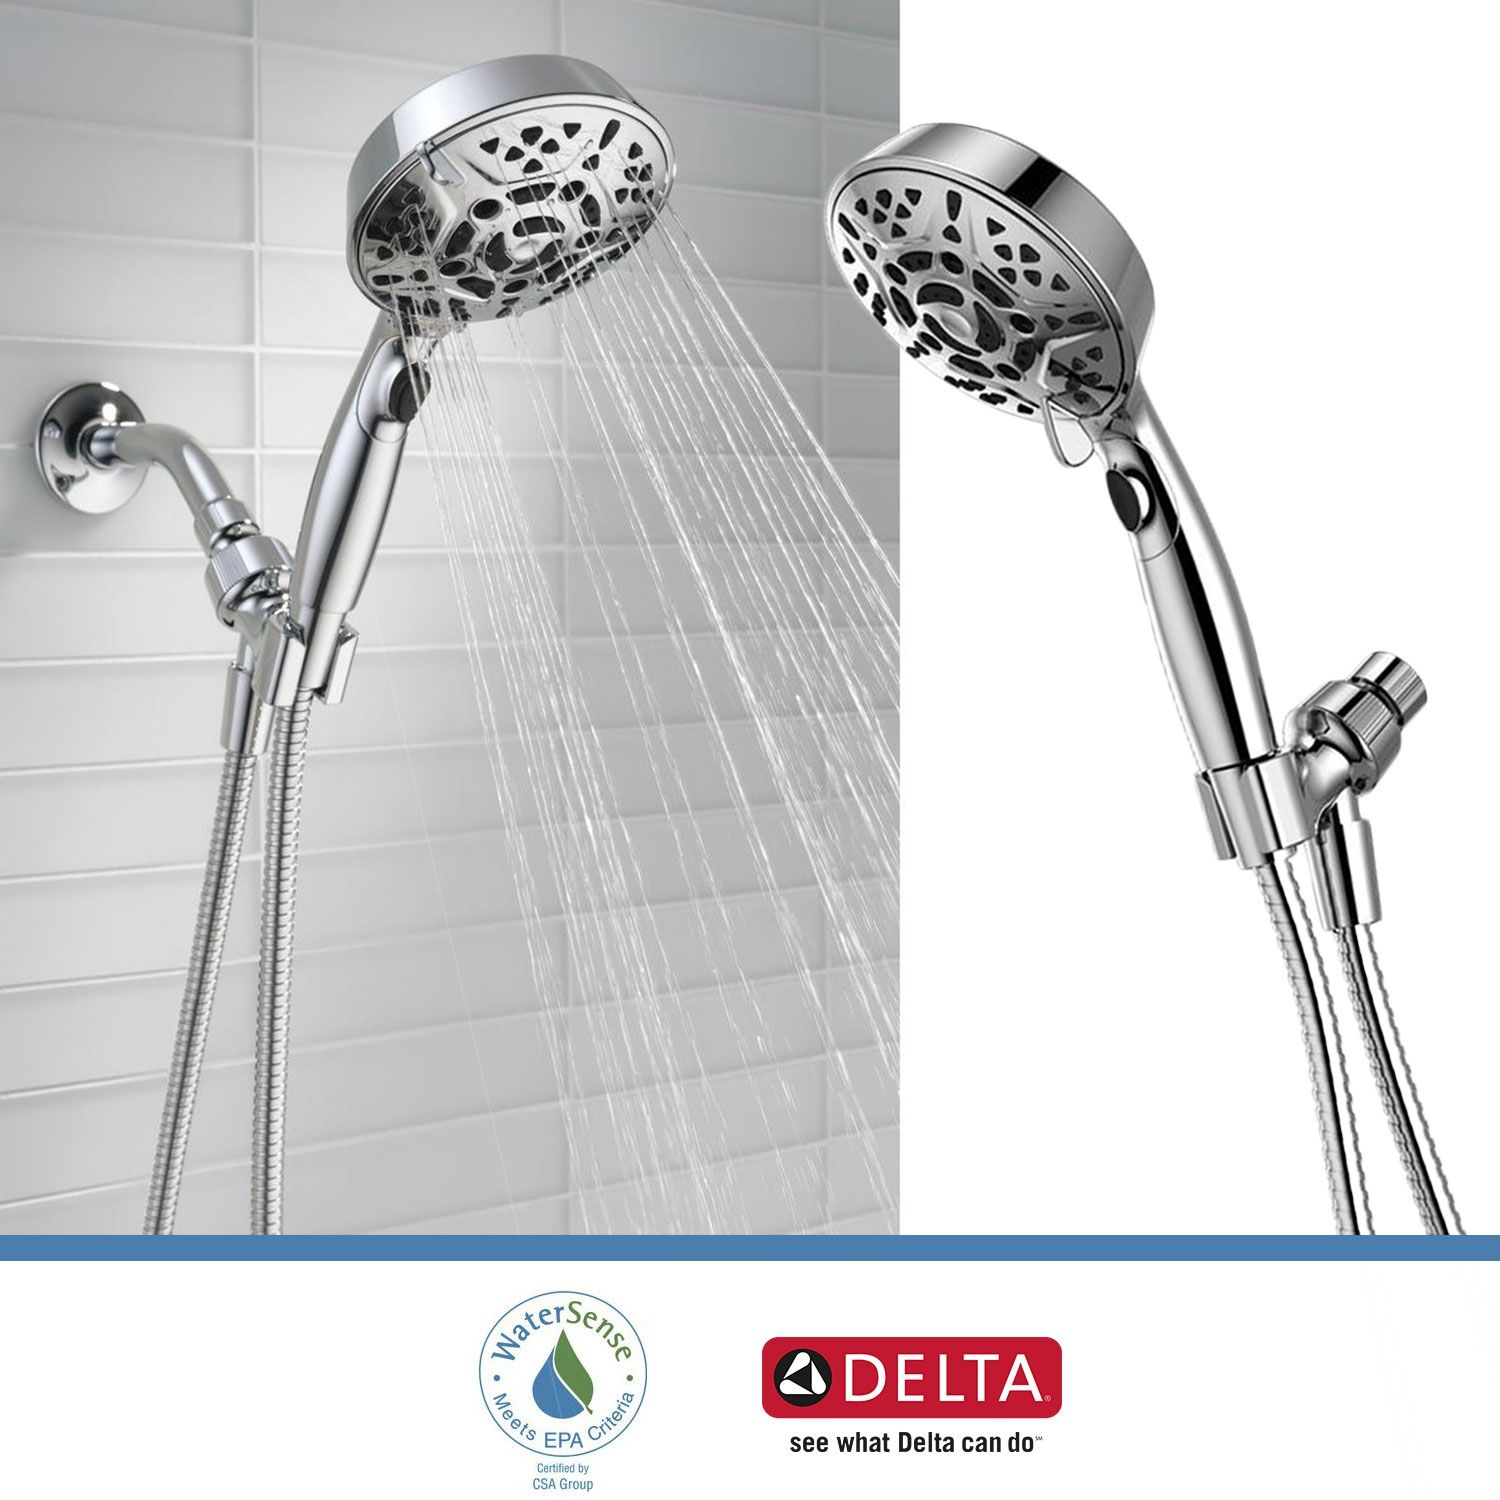 Delta Faucets 75716 7 Spray Head Shower Head Handheld H2okinetic